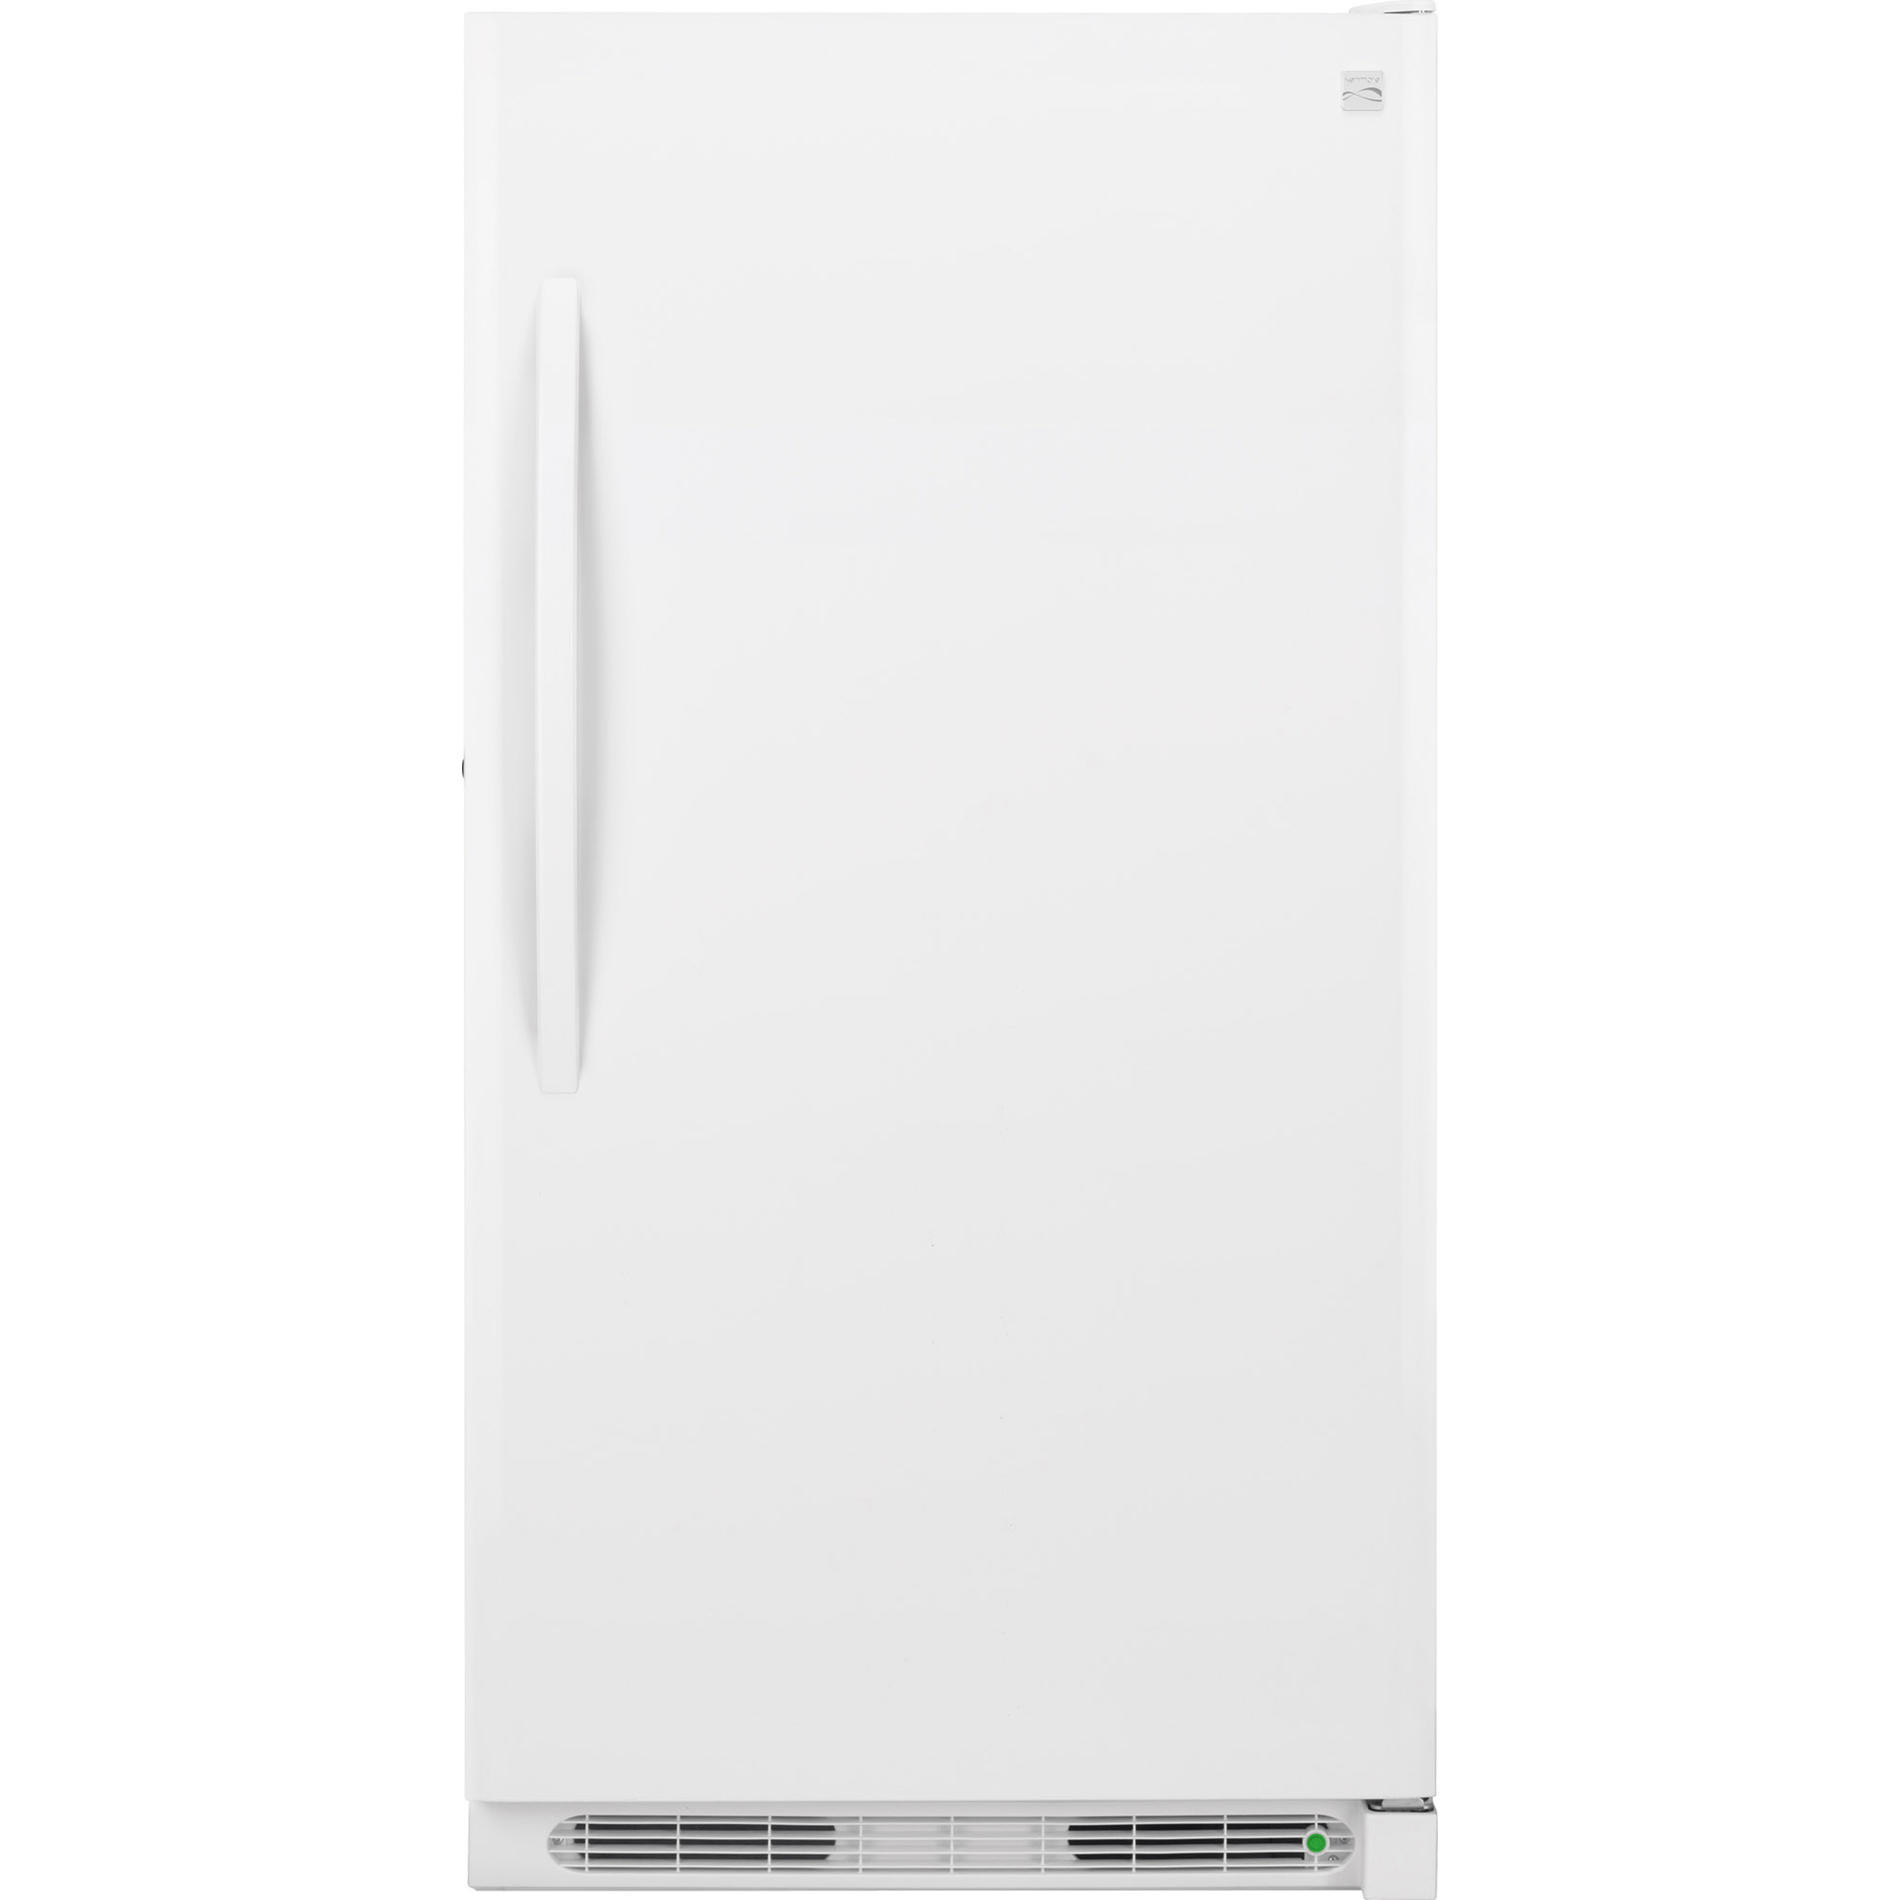 Kenmore 22042 20.2 cu. ft. Upright Freezer - White